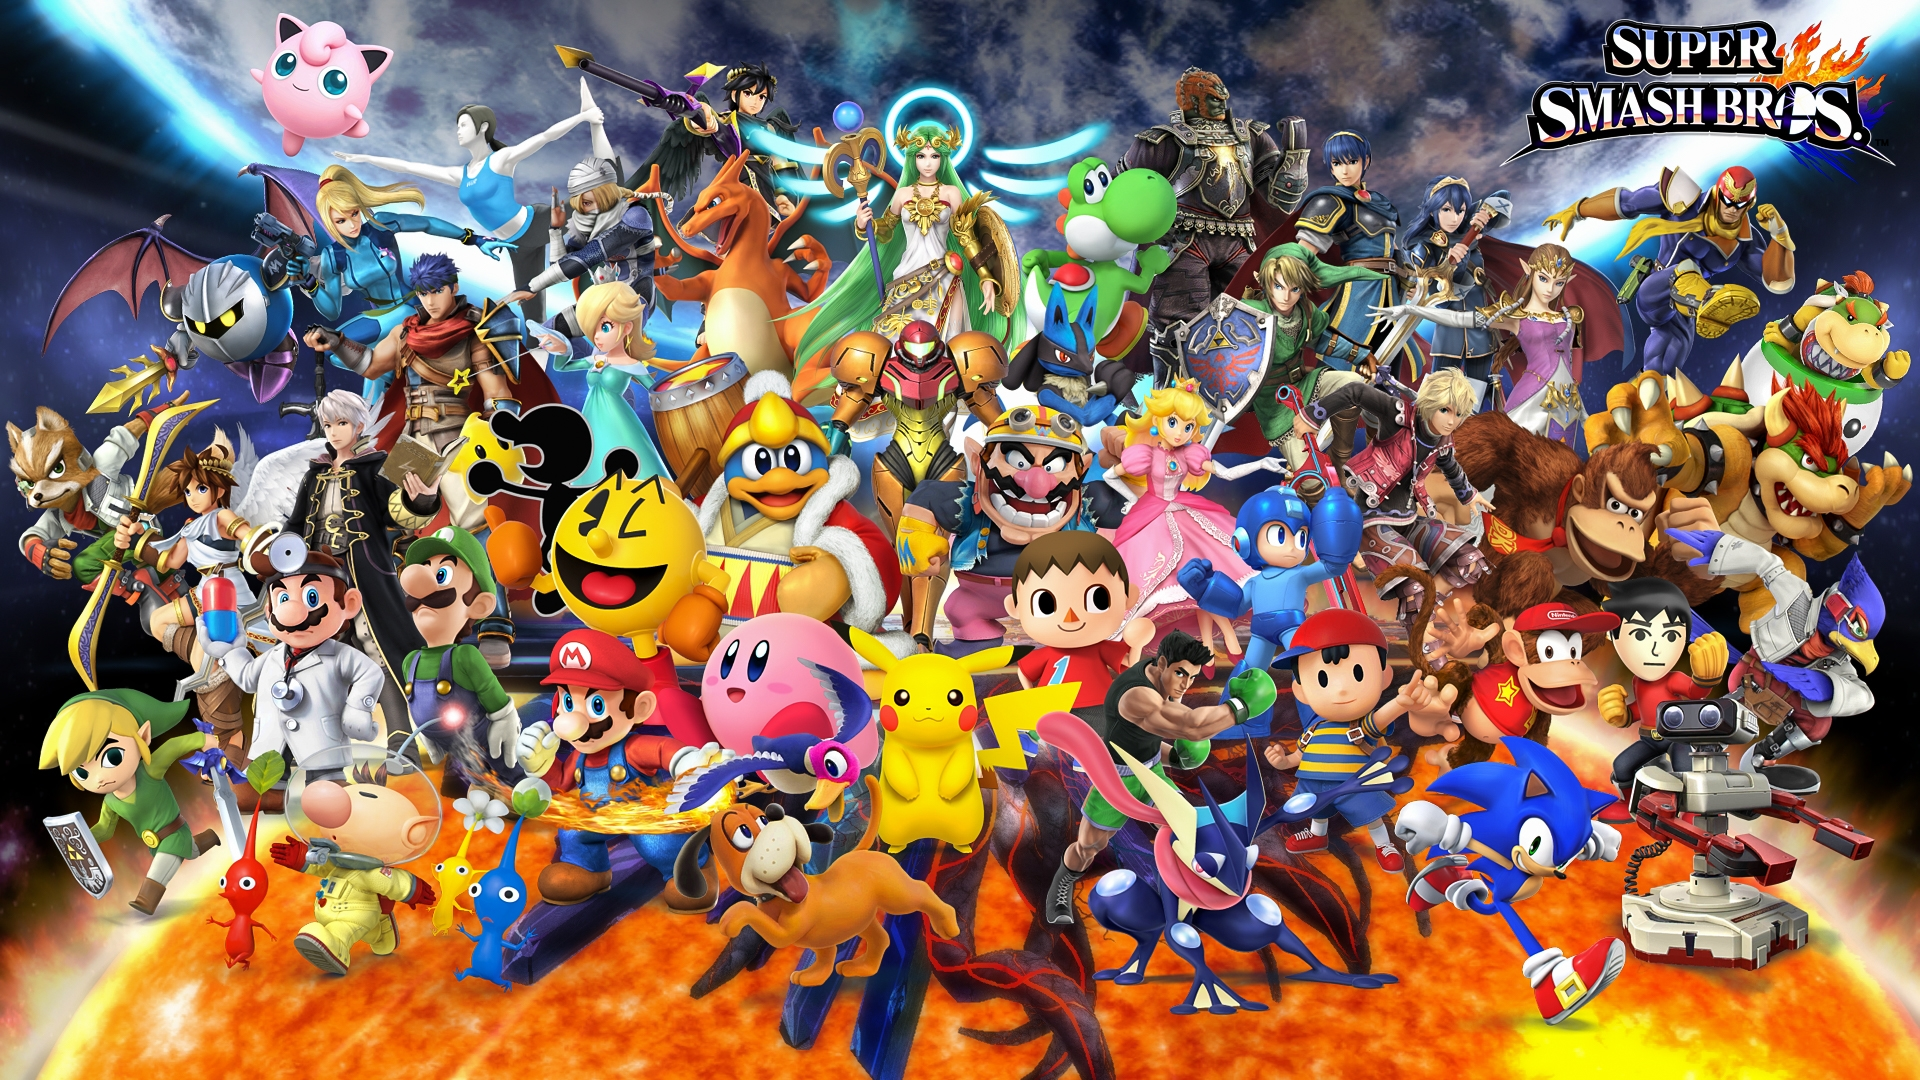 super smash bros. for nintendo 3ds and wii u all characters